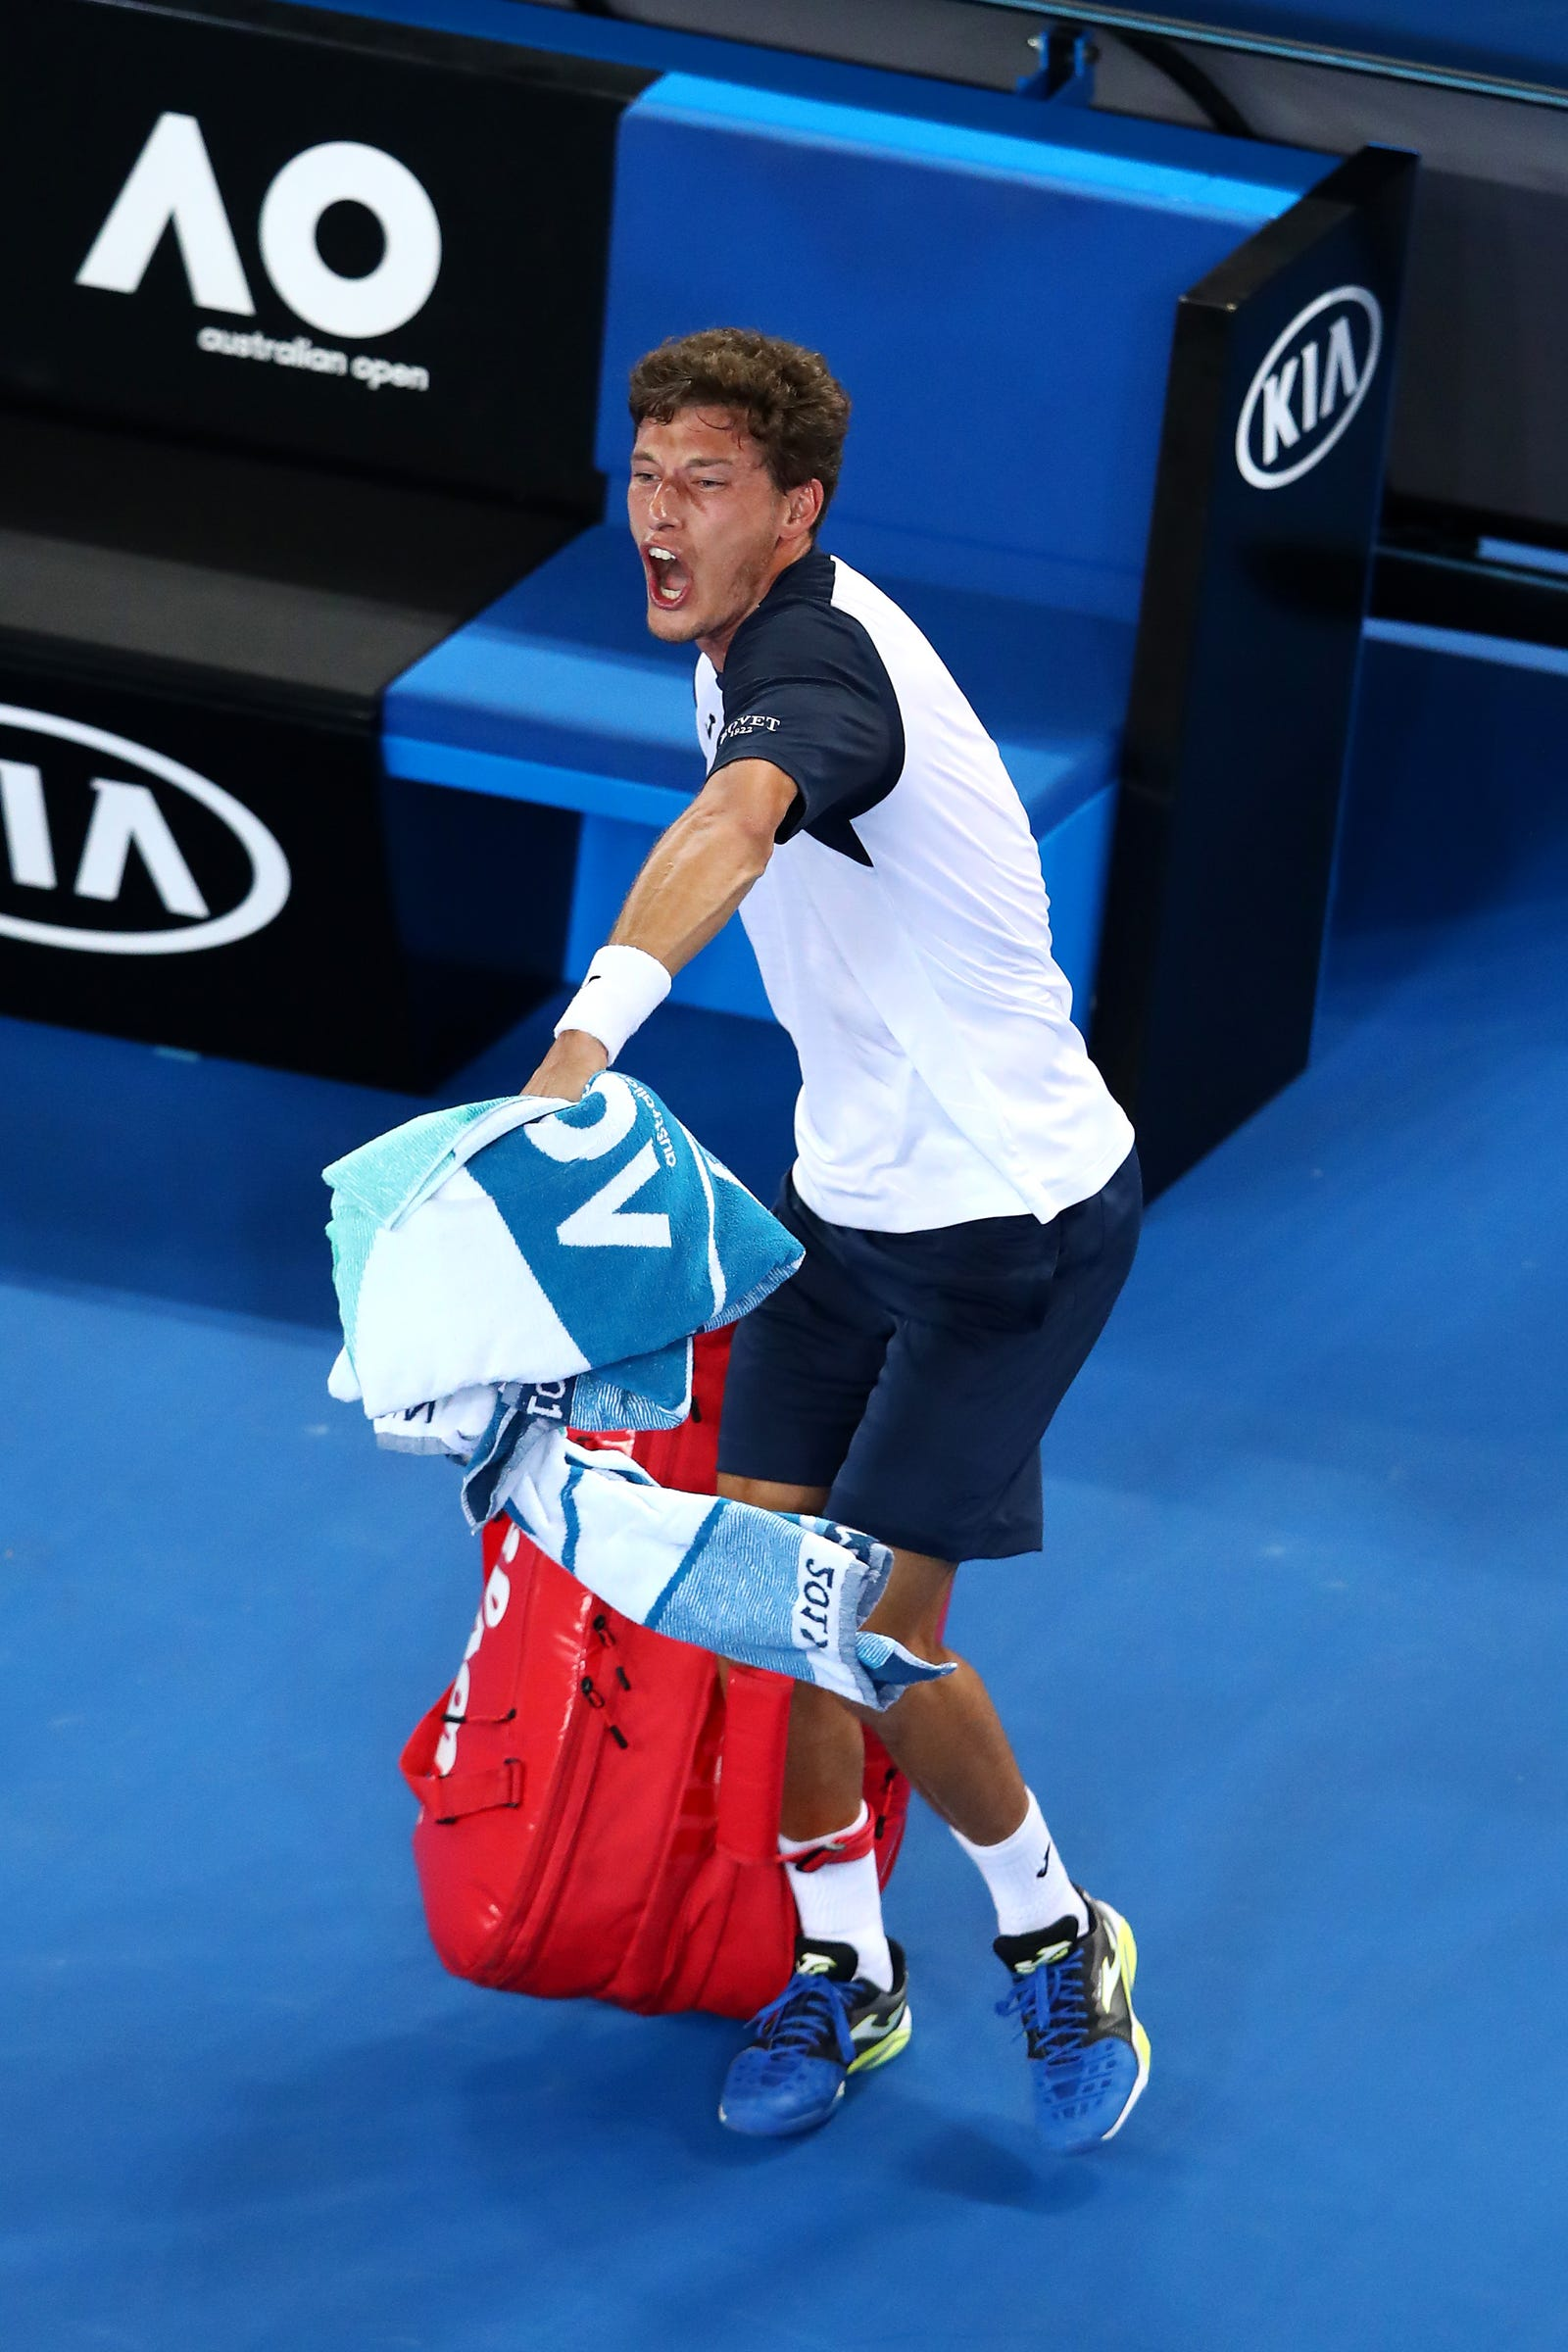 Illustration for article titled Poor Pablo Carreño Busta Chucked His Bag And Raged Off The Court After A Thorny Call